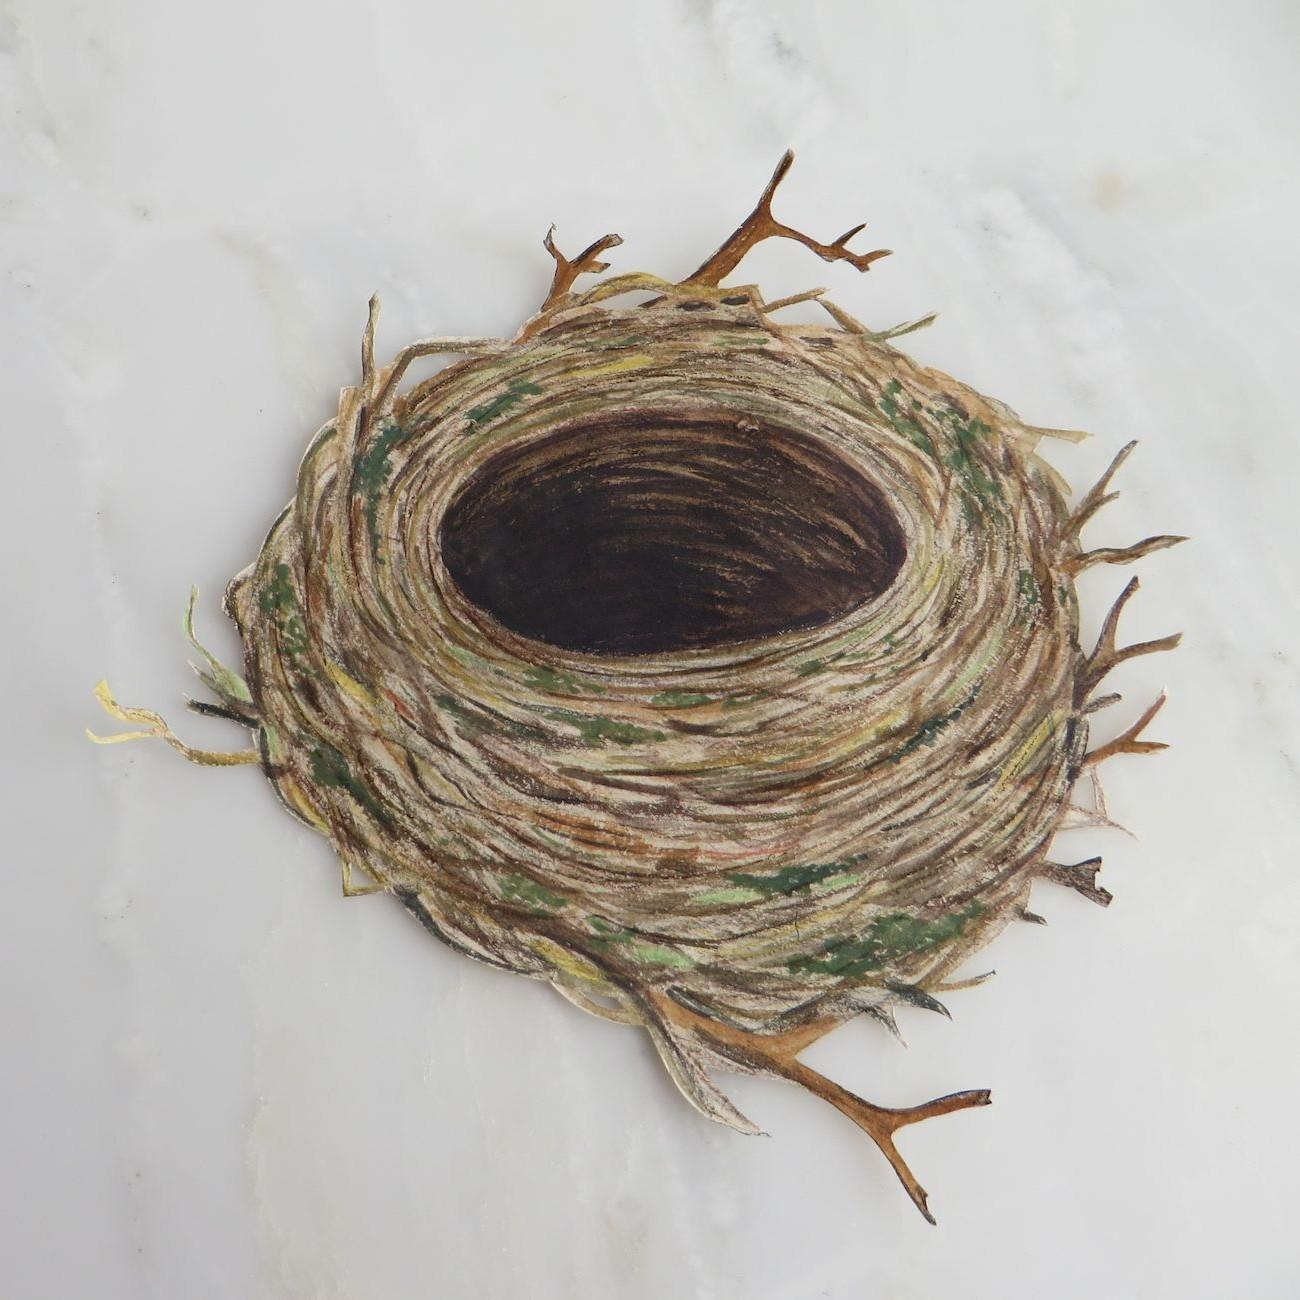 painted nest.jpg